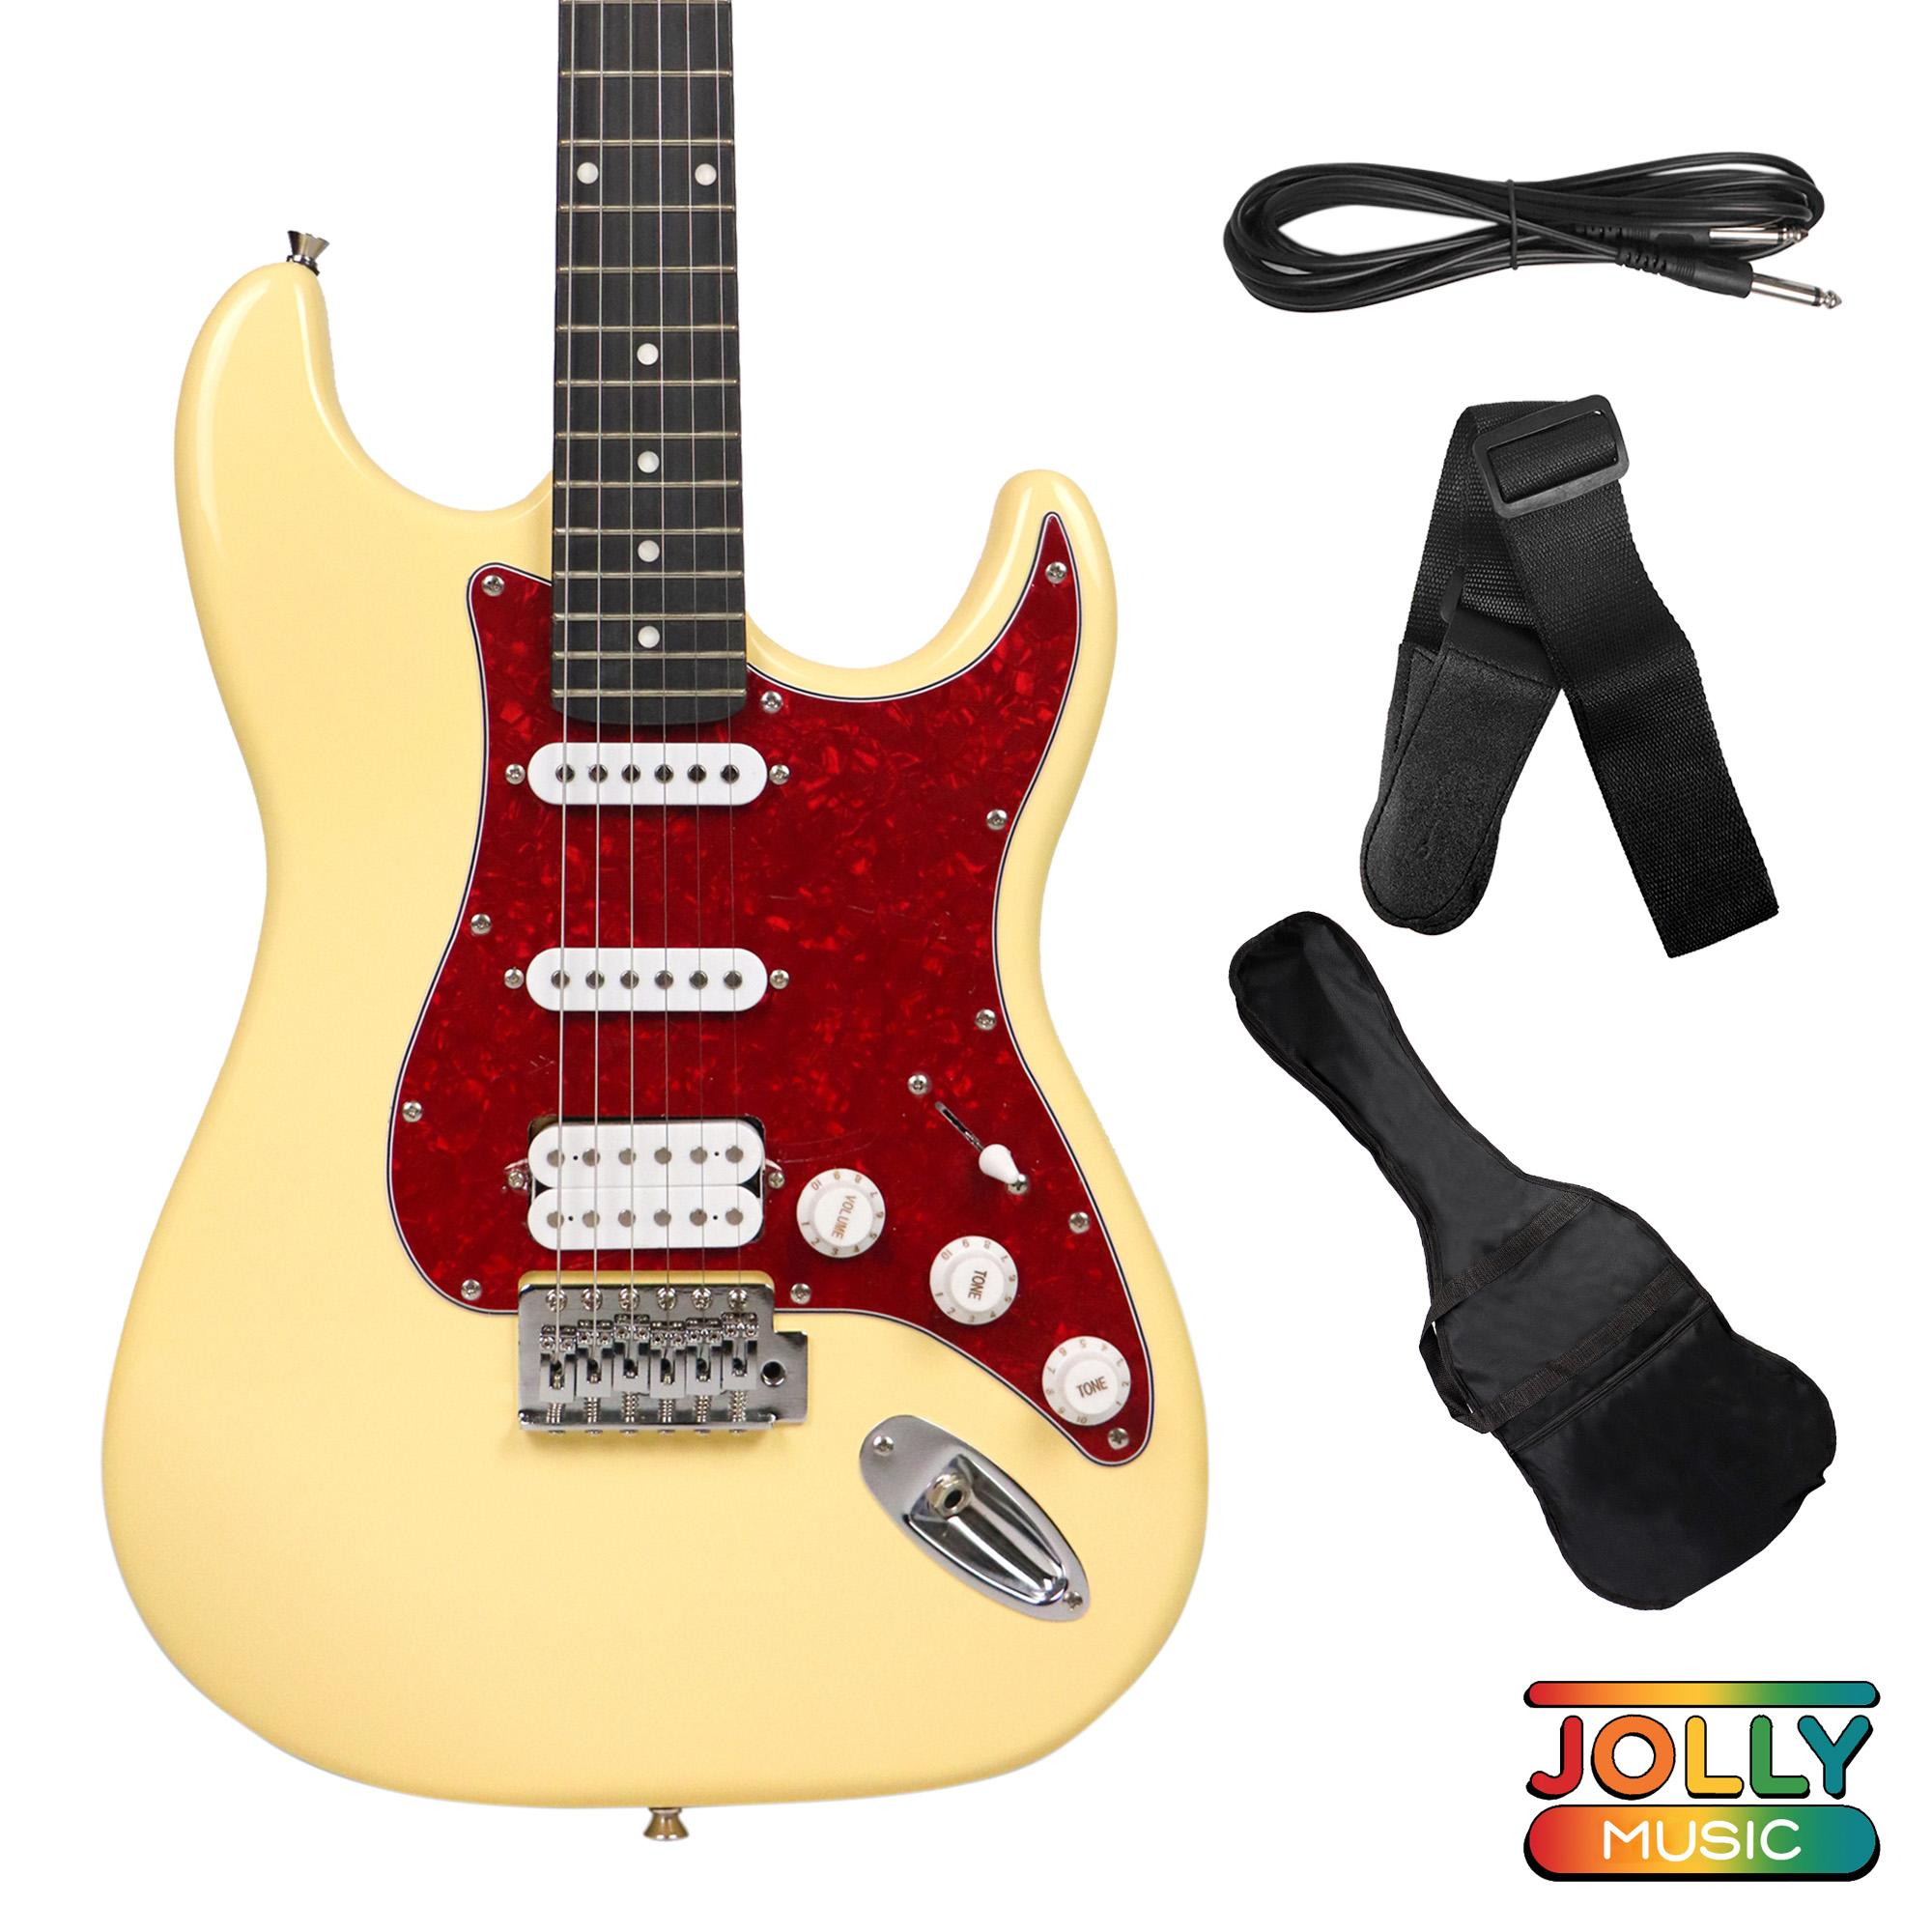 Electric Guitar For Sale Rock Band Guitars Best Seller Prices Making A Simple Diy Mini Amplifier Strat And Other Brands In Philippines